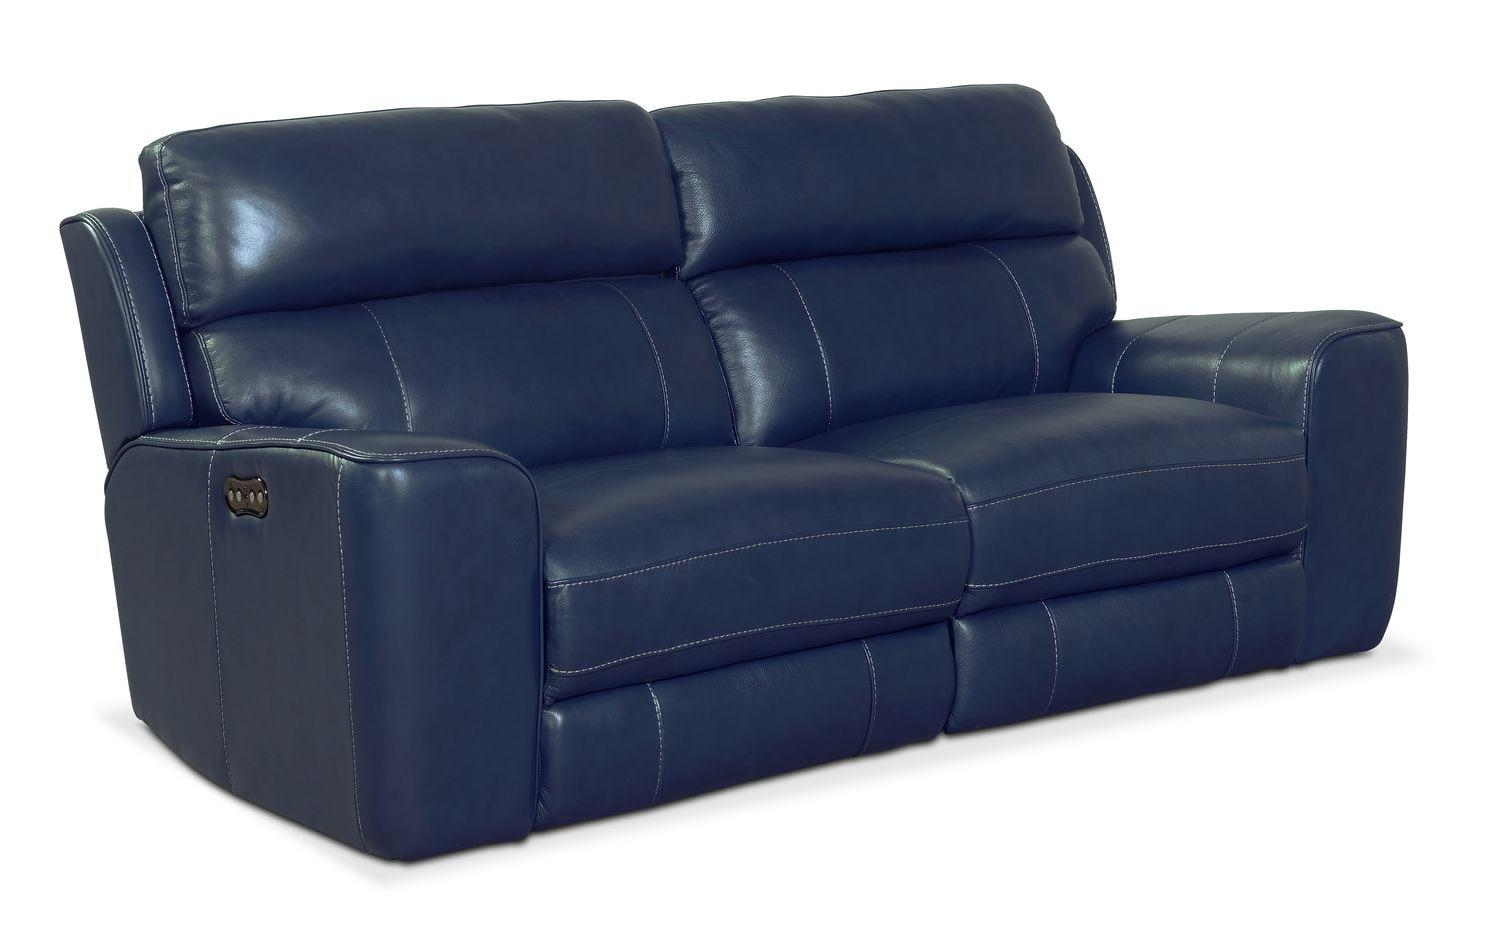 Newport 2-Piece Power Reclining Sofa - Blue | Value City Furniture pertaining to Newport Sofas